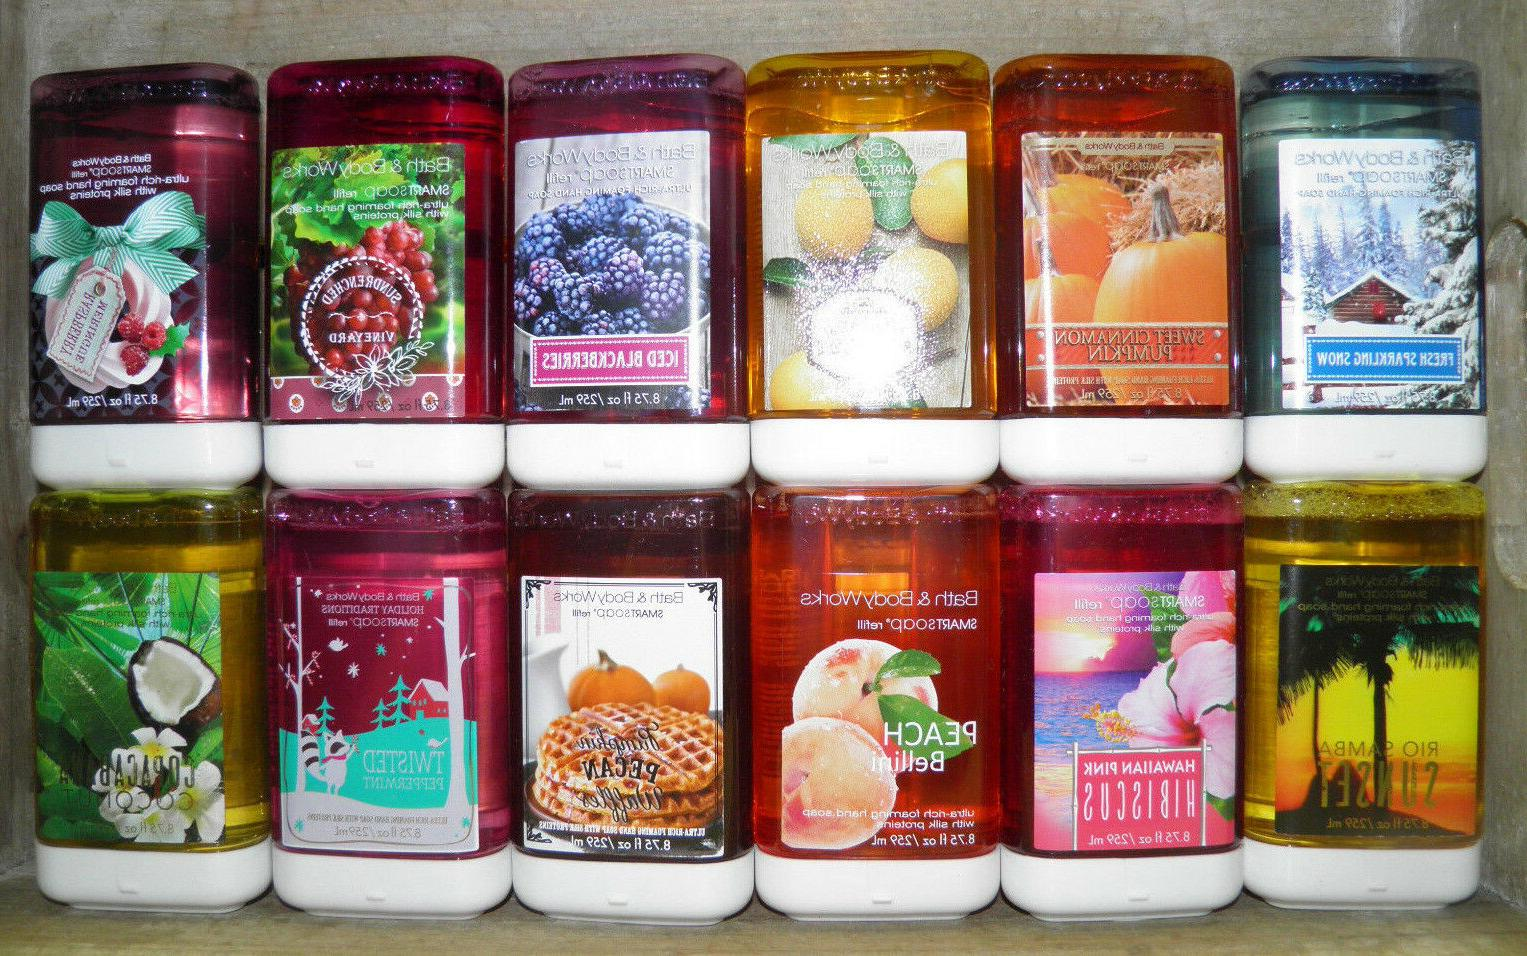 Bath & Body Works Smartsoap Refill Foaming Hand Soap Smart S